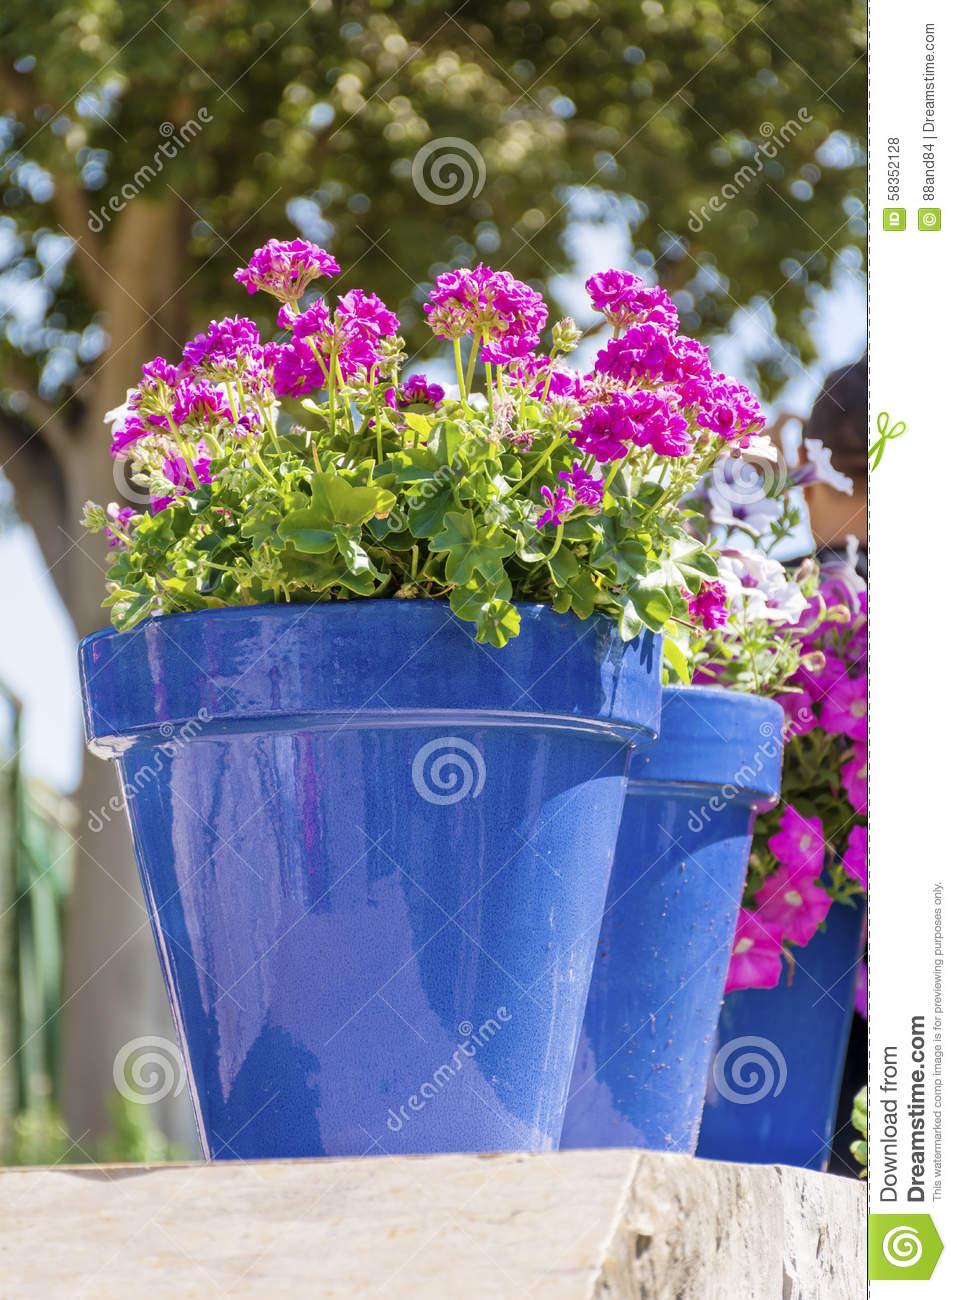 Blue pots with pink geranium flowers for street decoration in spain royalty free stock photo mightylinksfo